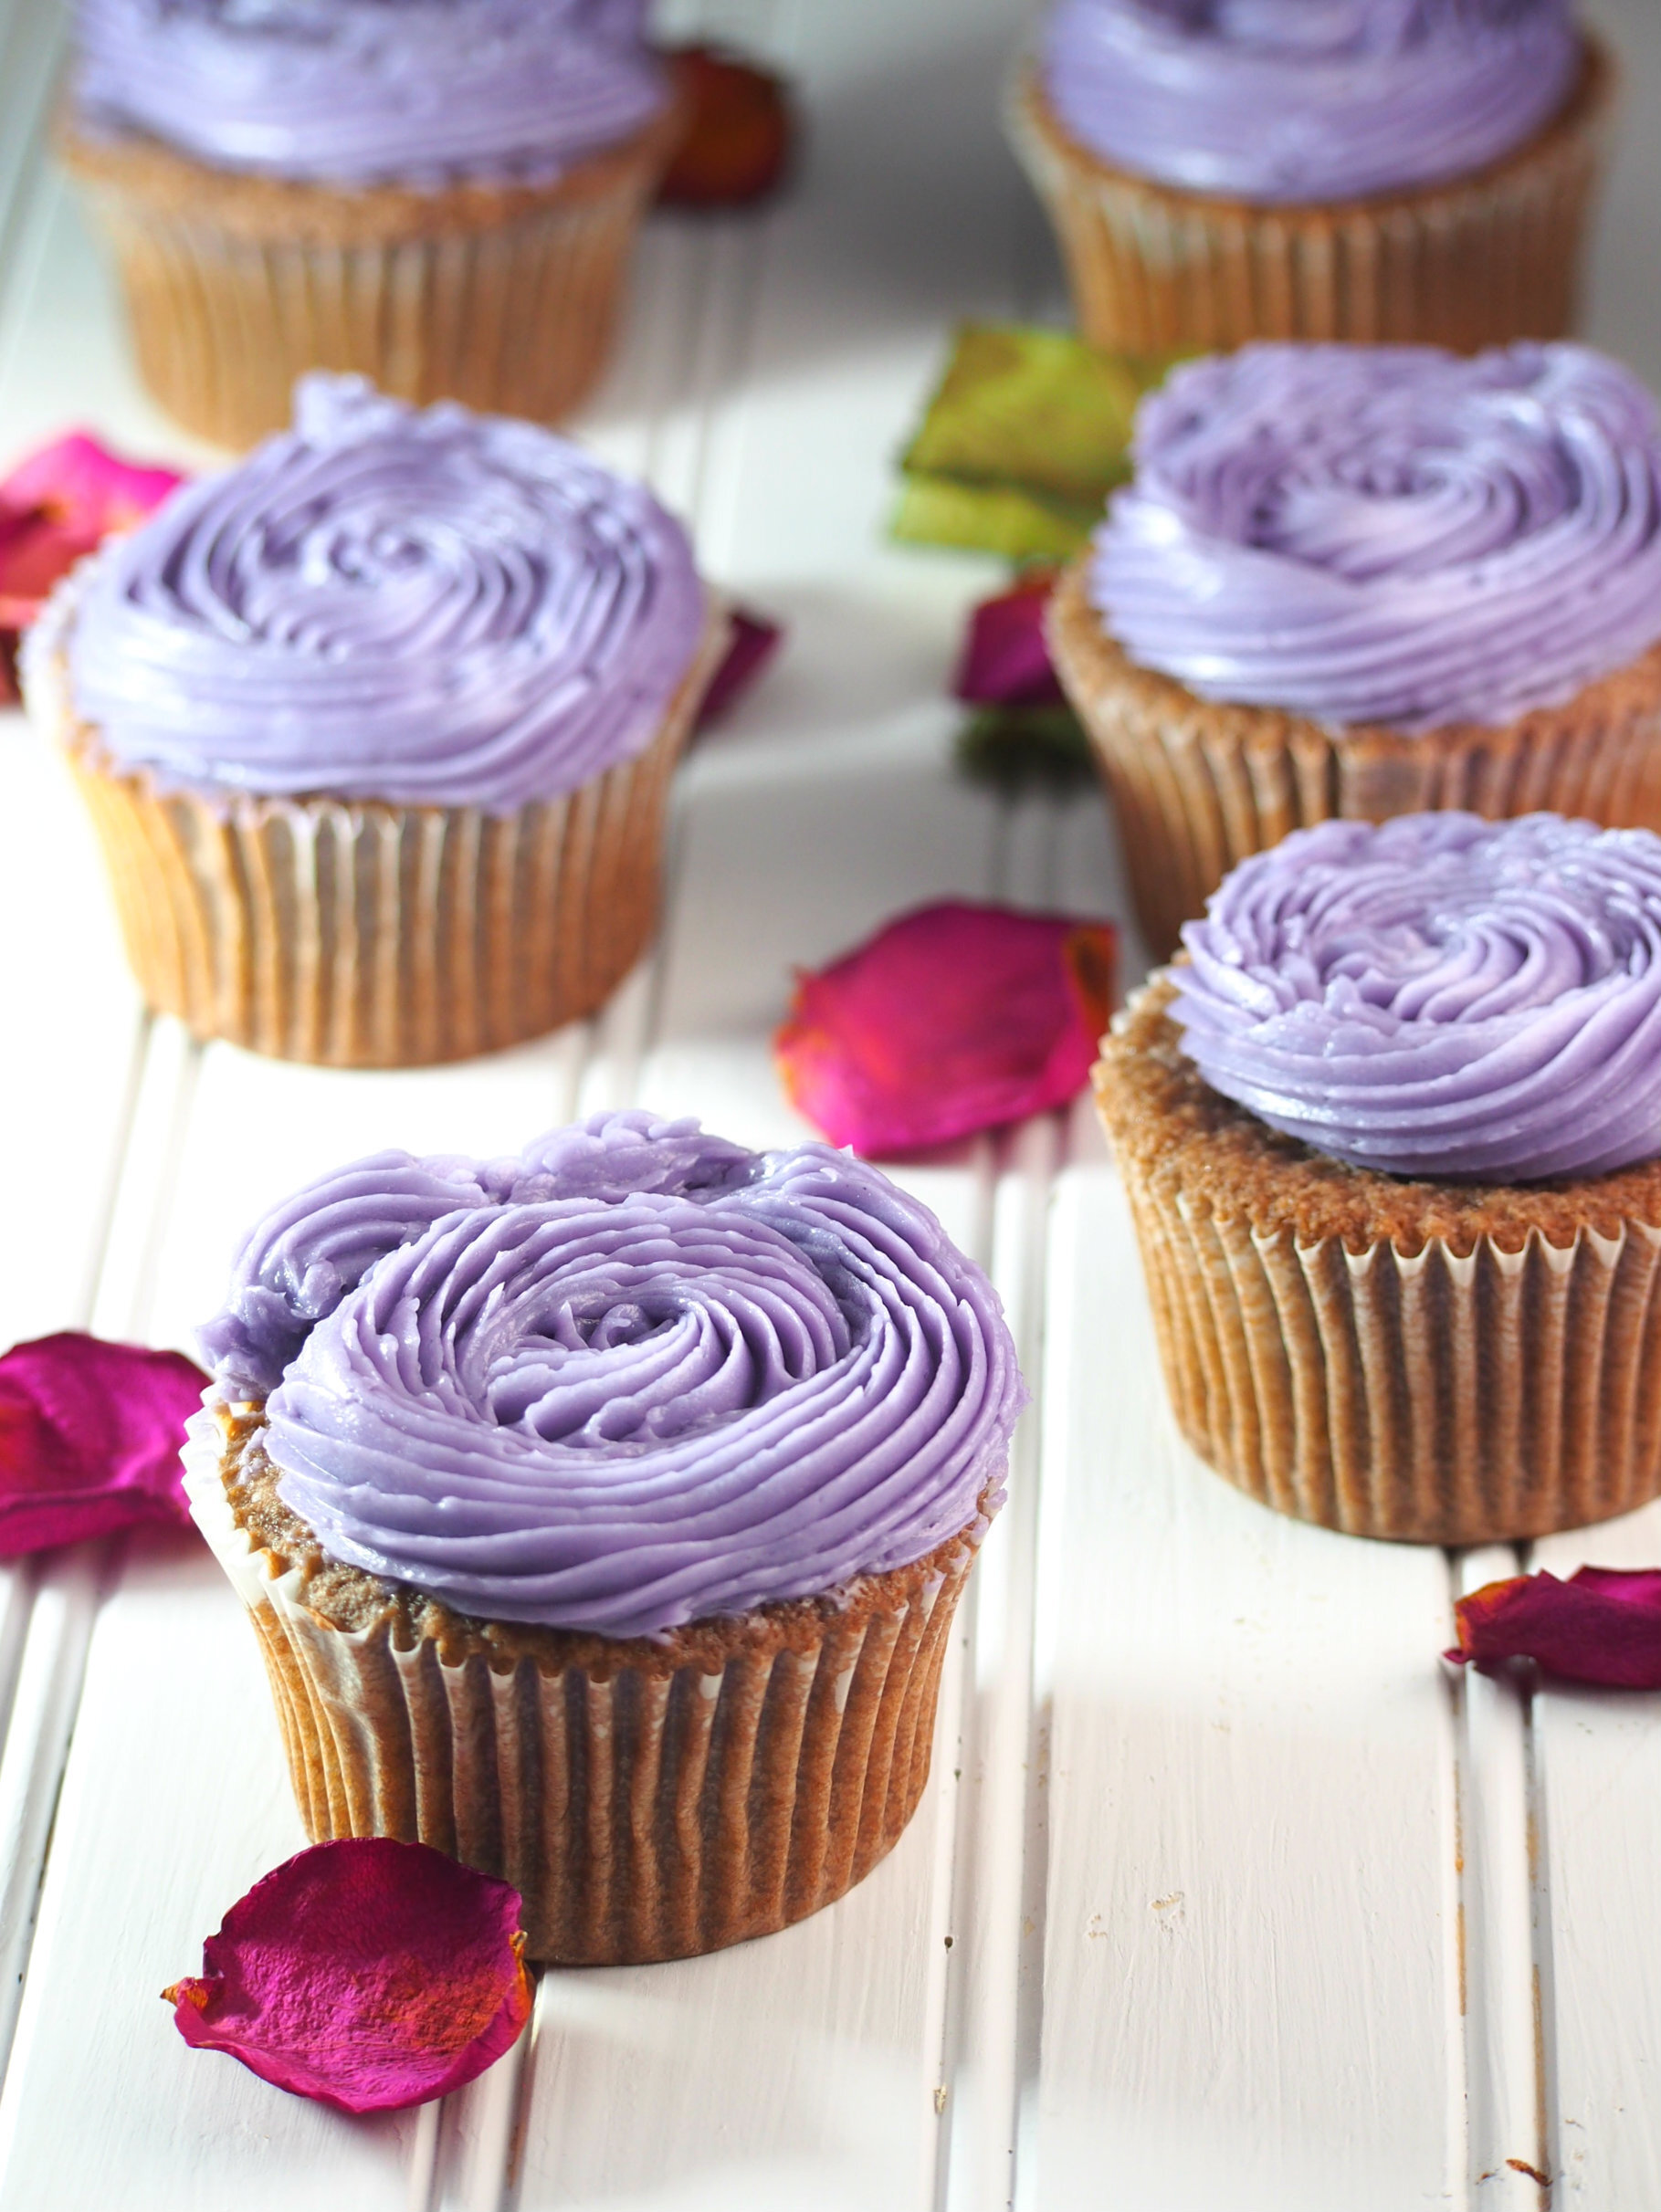 Ube Cupcakes with Ube Swiss Meringue Buttercream